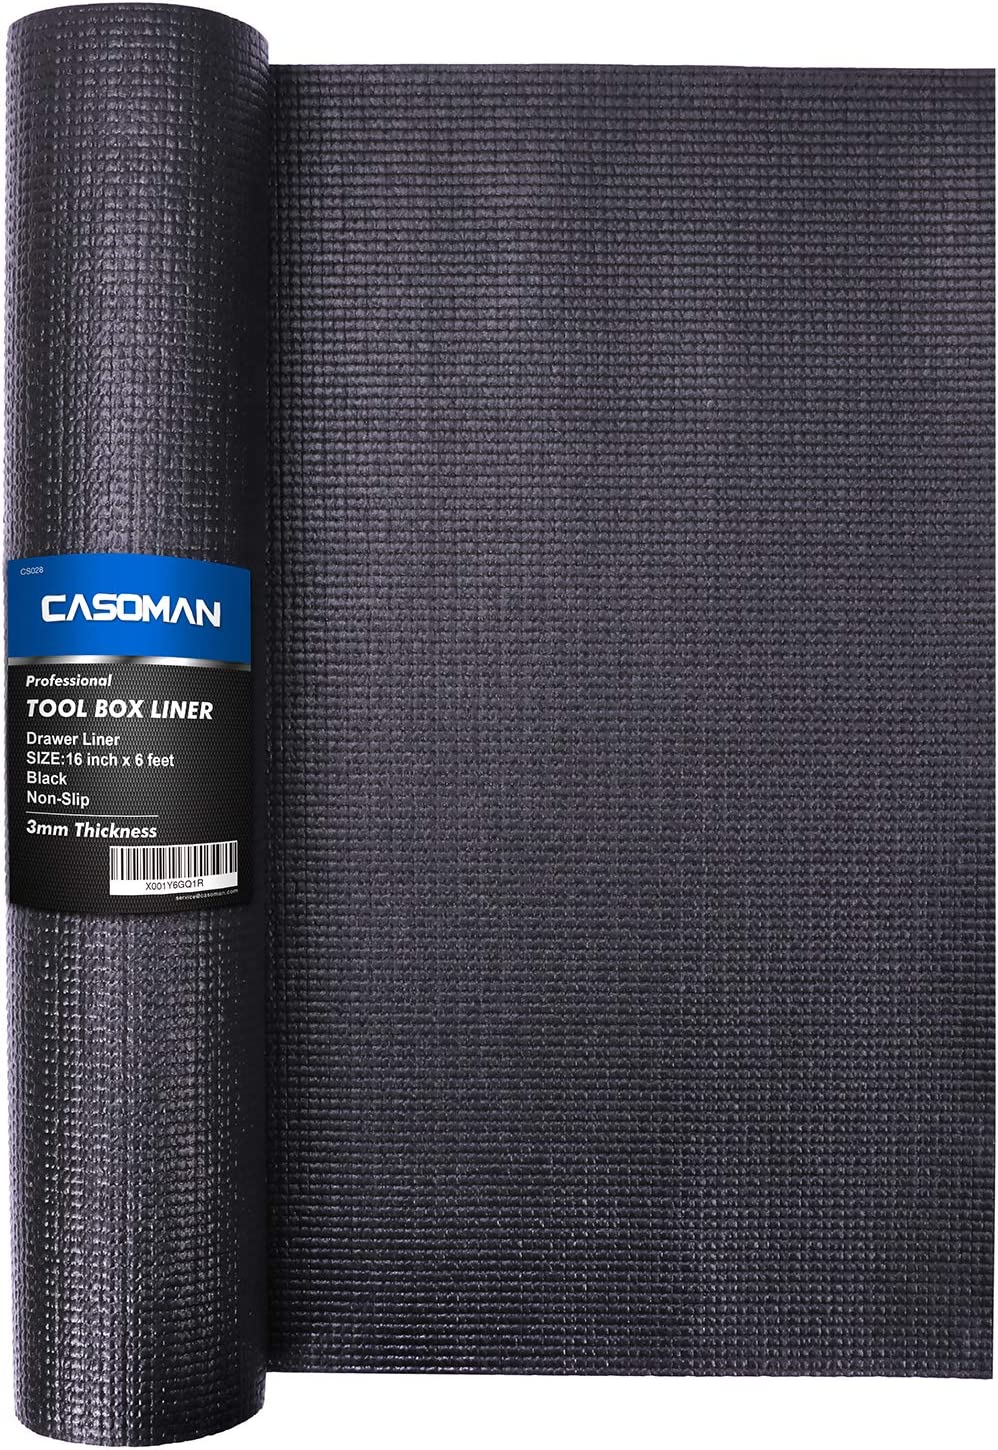 CASOMAN Professional Tool Box Liner and Drawer Liner,Easy Cut Non-Slip Foam Rubber Toolbox Drawer Liner Mat - Adjustable Thick Cabinet Liners,Black,16 Inch (Wide) x 6 Feet (Long)